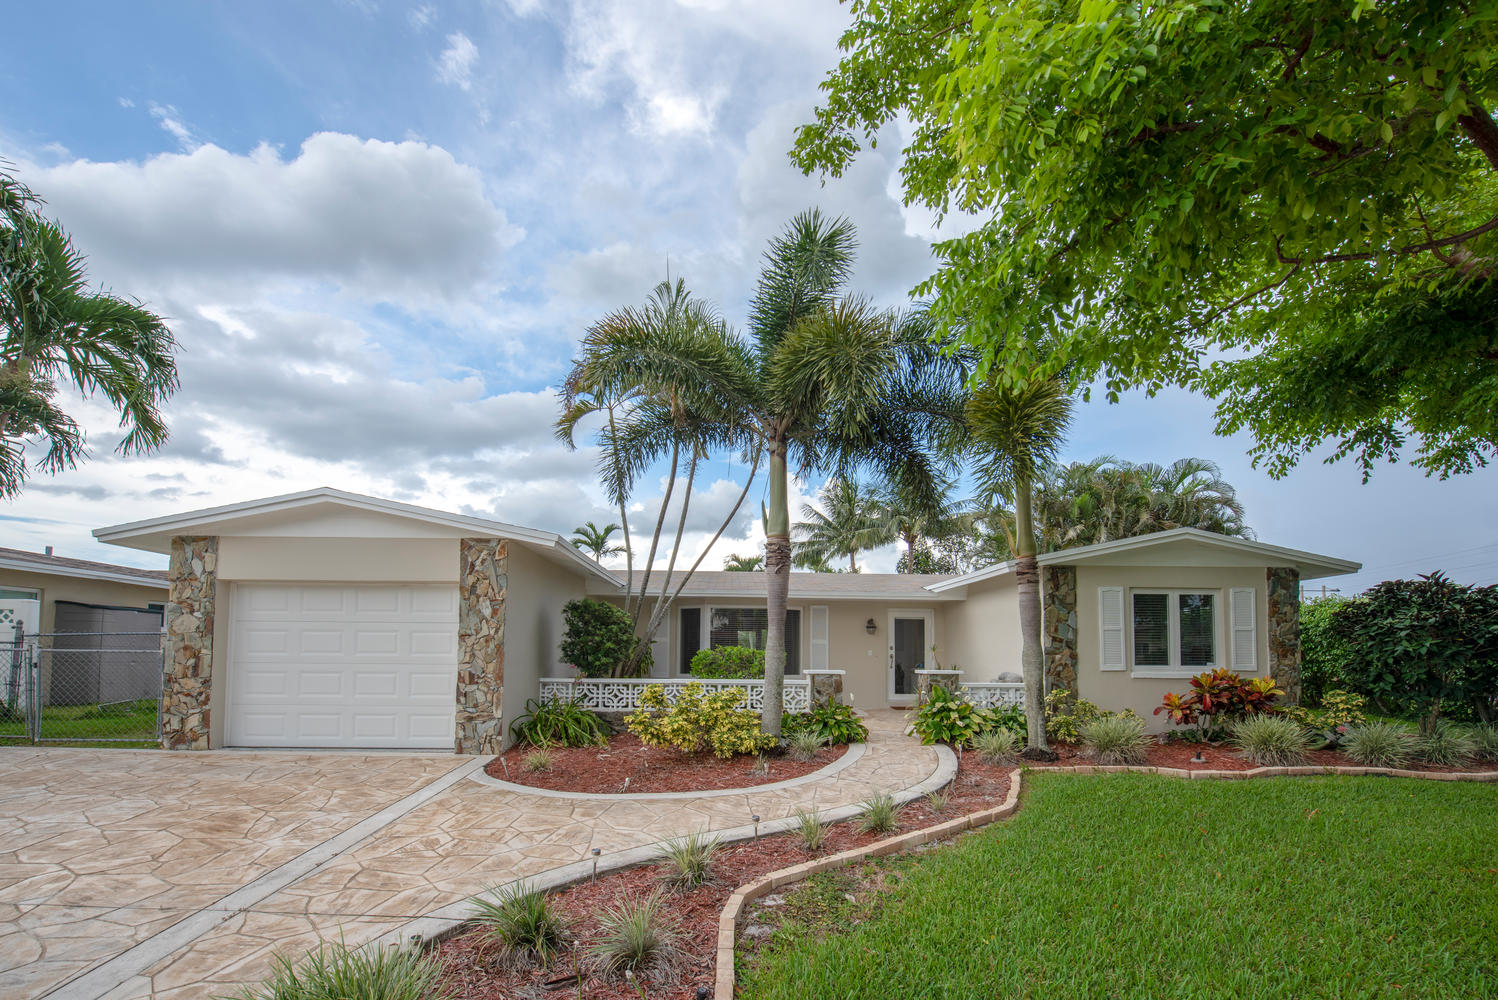 9311 NW 20th Ct Pembroke Pines-large-002-2-Exterior  Front-1499x1000-72dpi.jpg